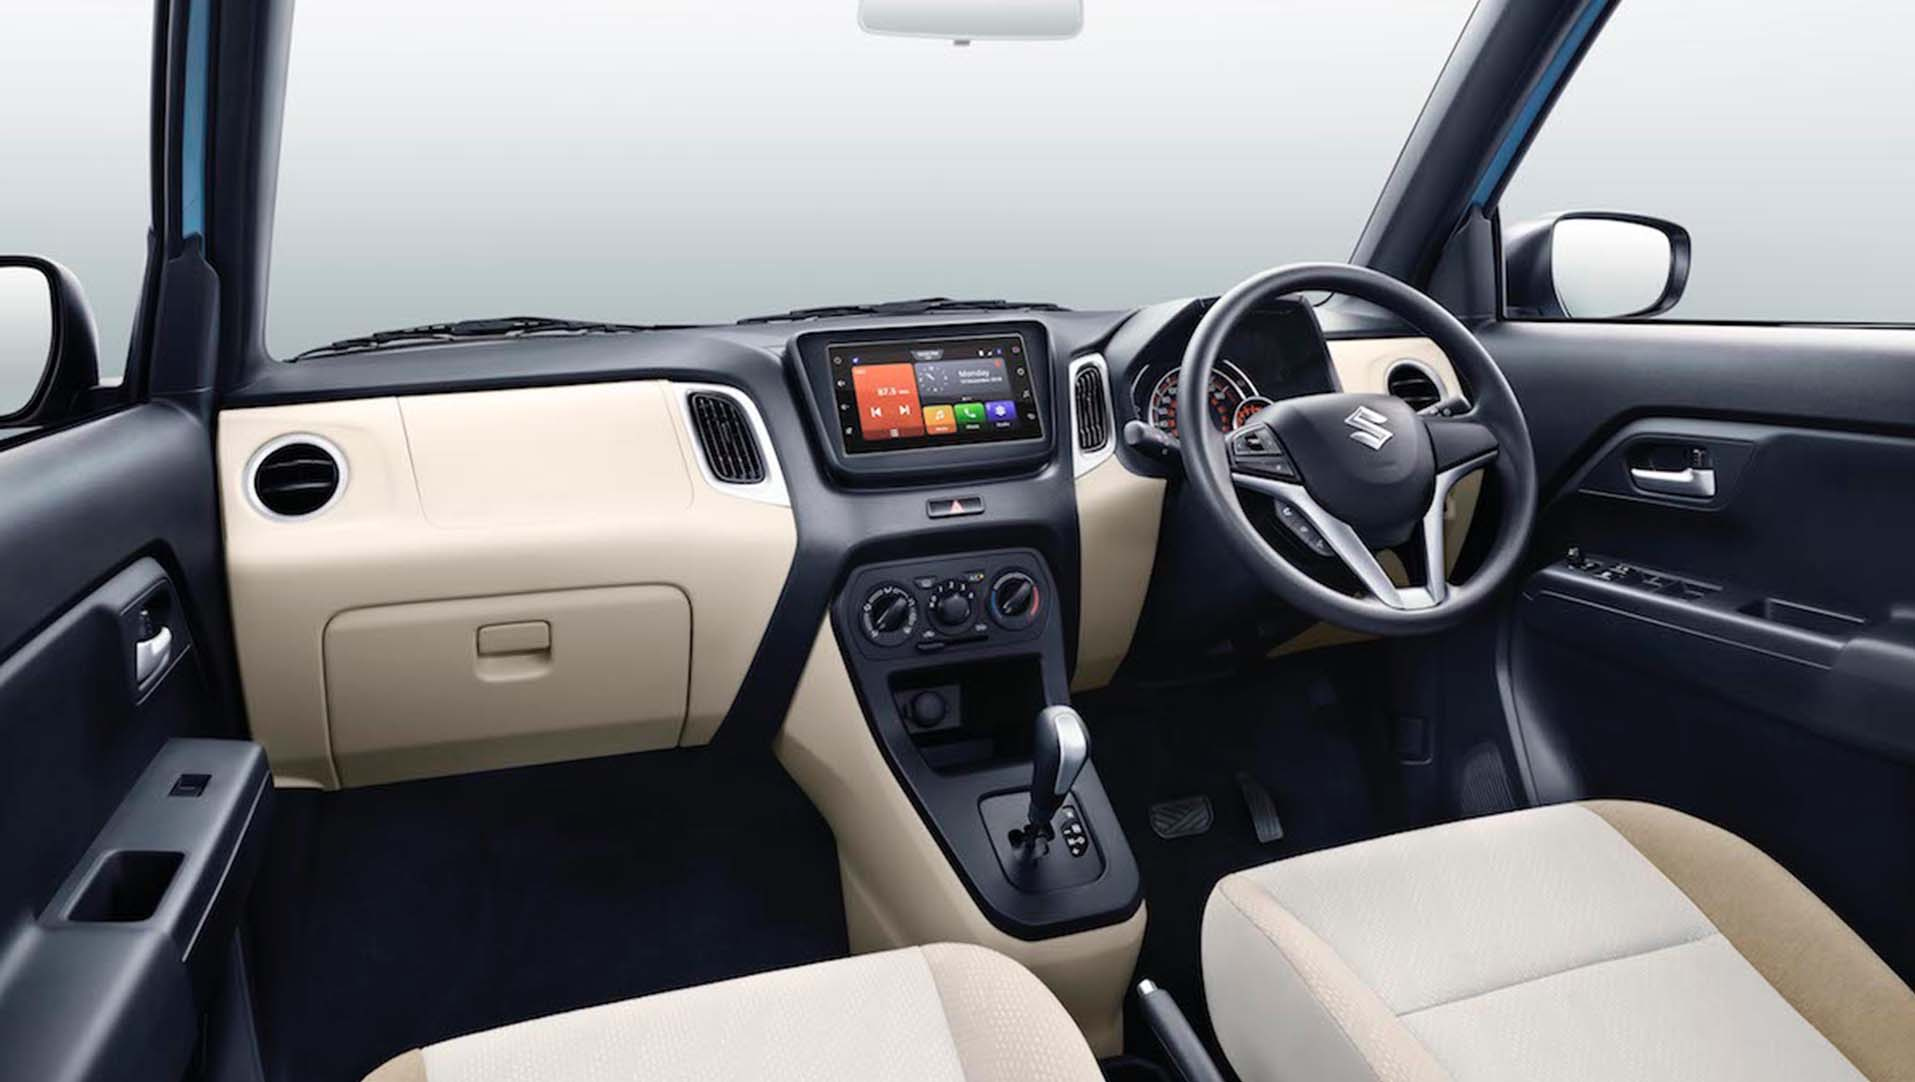 https://iciciauto.com/storage/upload/model_images/Maruti Wagon R - Dashboard.jpg